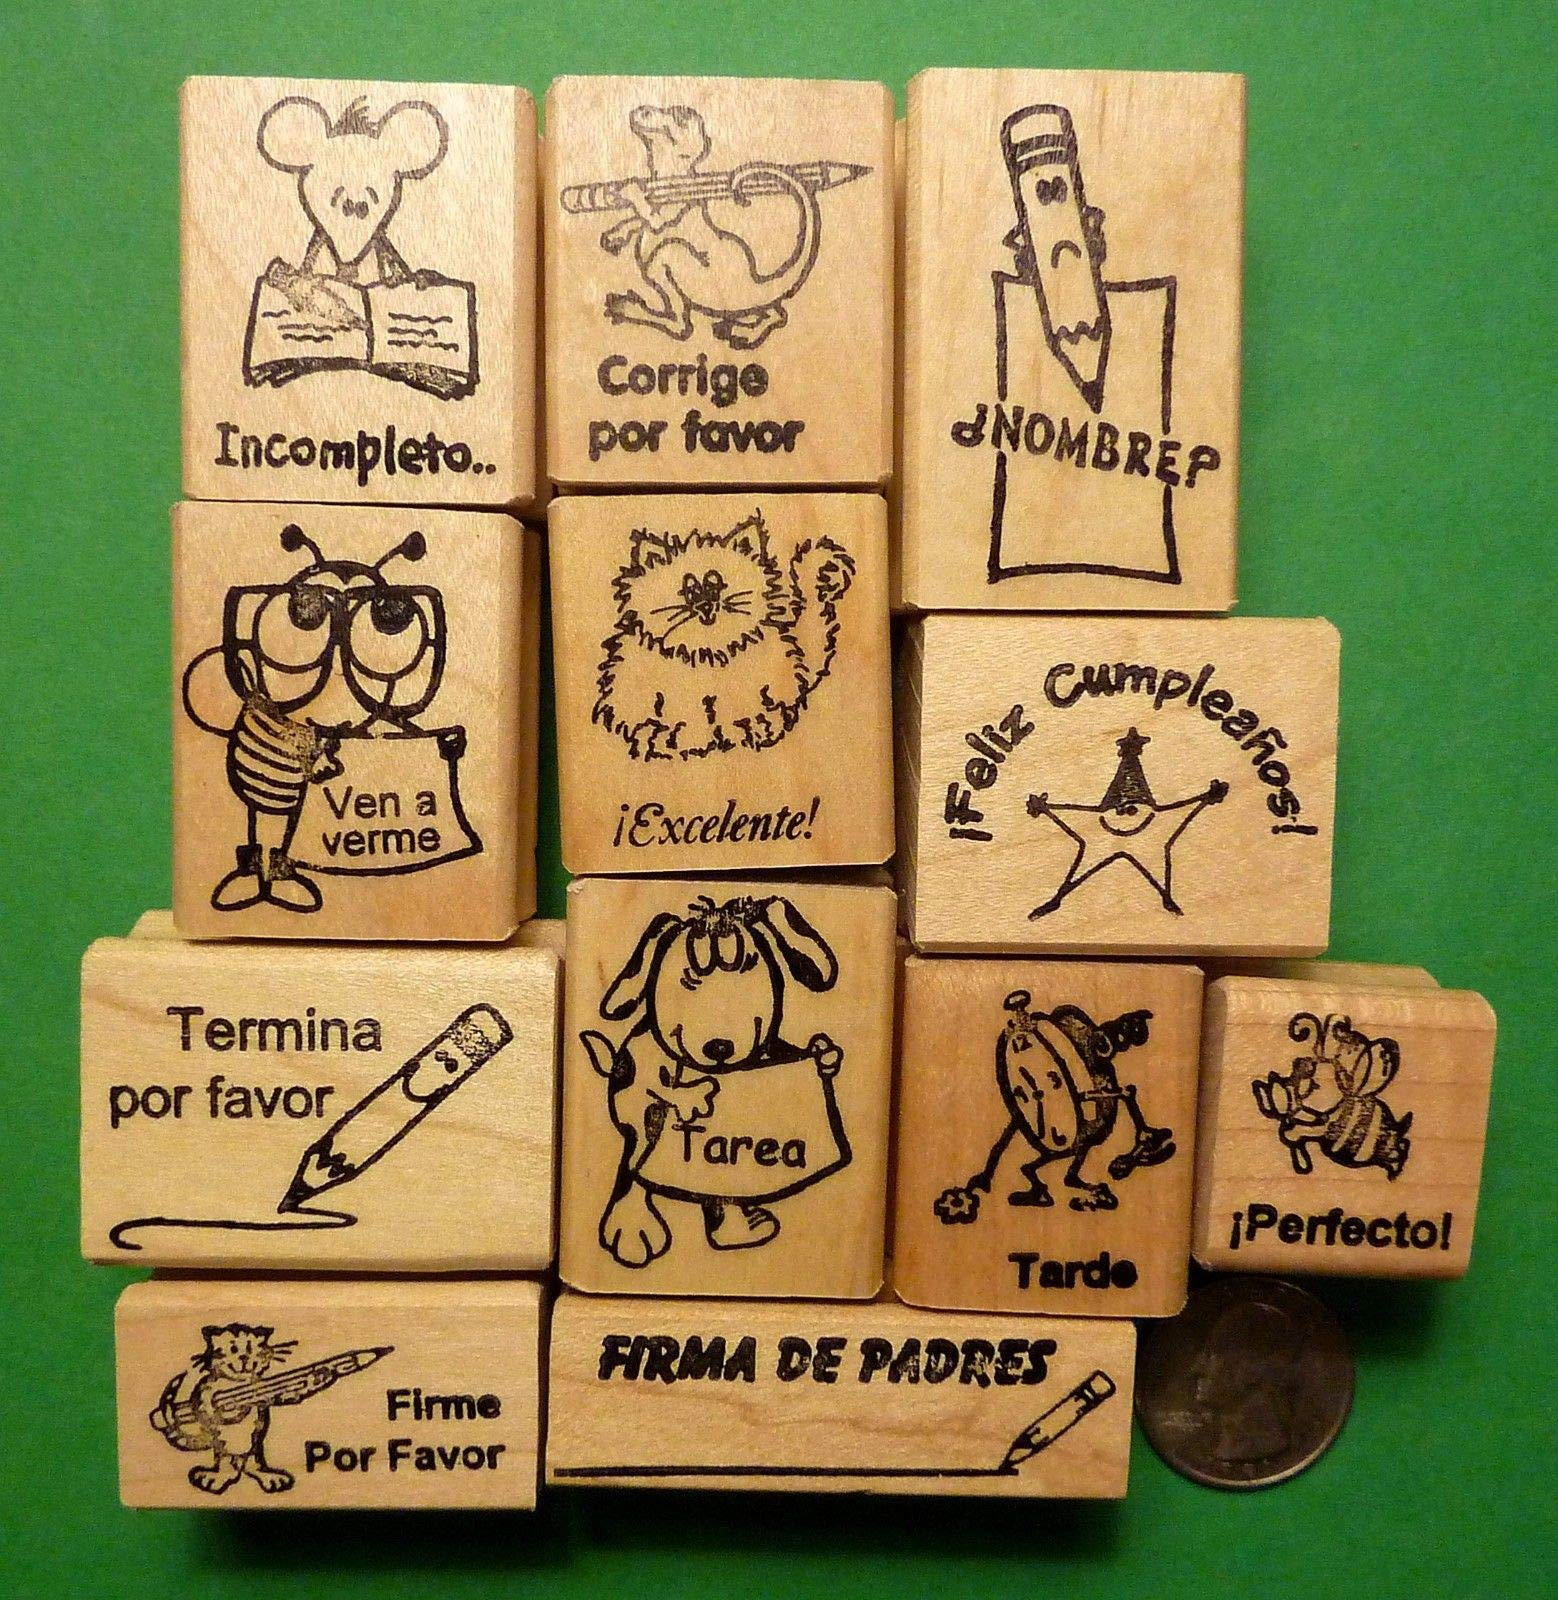 Teacher Spanish-Only Rubber Stamp Assortment of 12, Wood Mounted - Rubber Stamp Wood Carving Blocks by Wooden Stamps